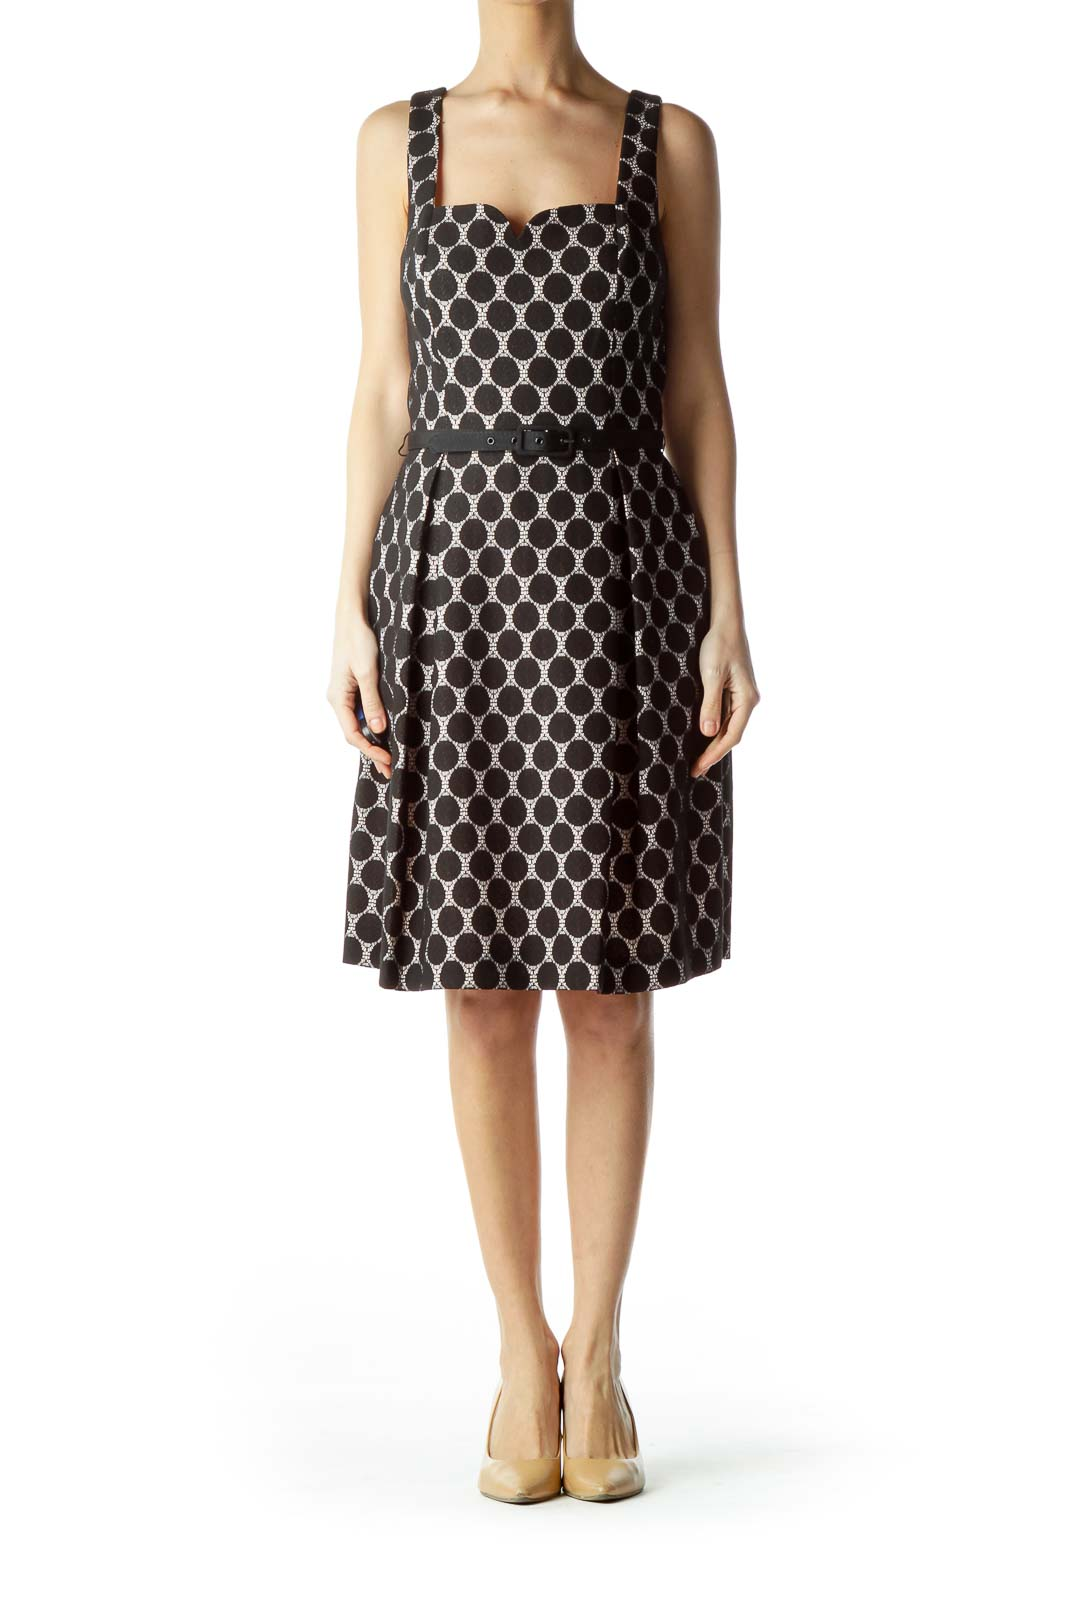 Black & Pink Lace Polka Dot Sleeveless Work Dress